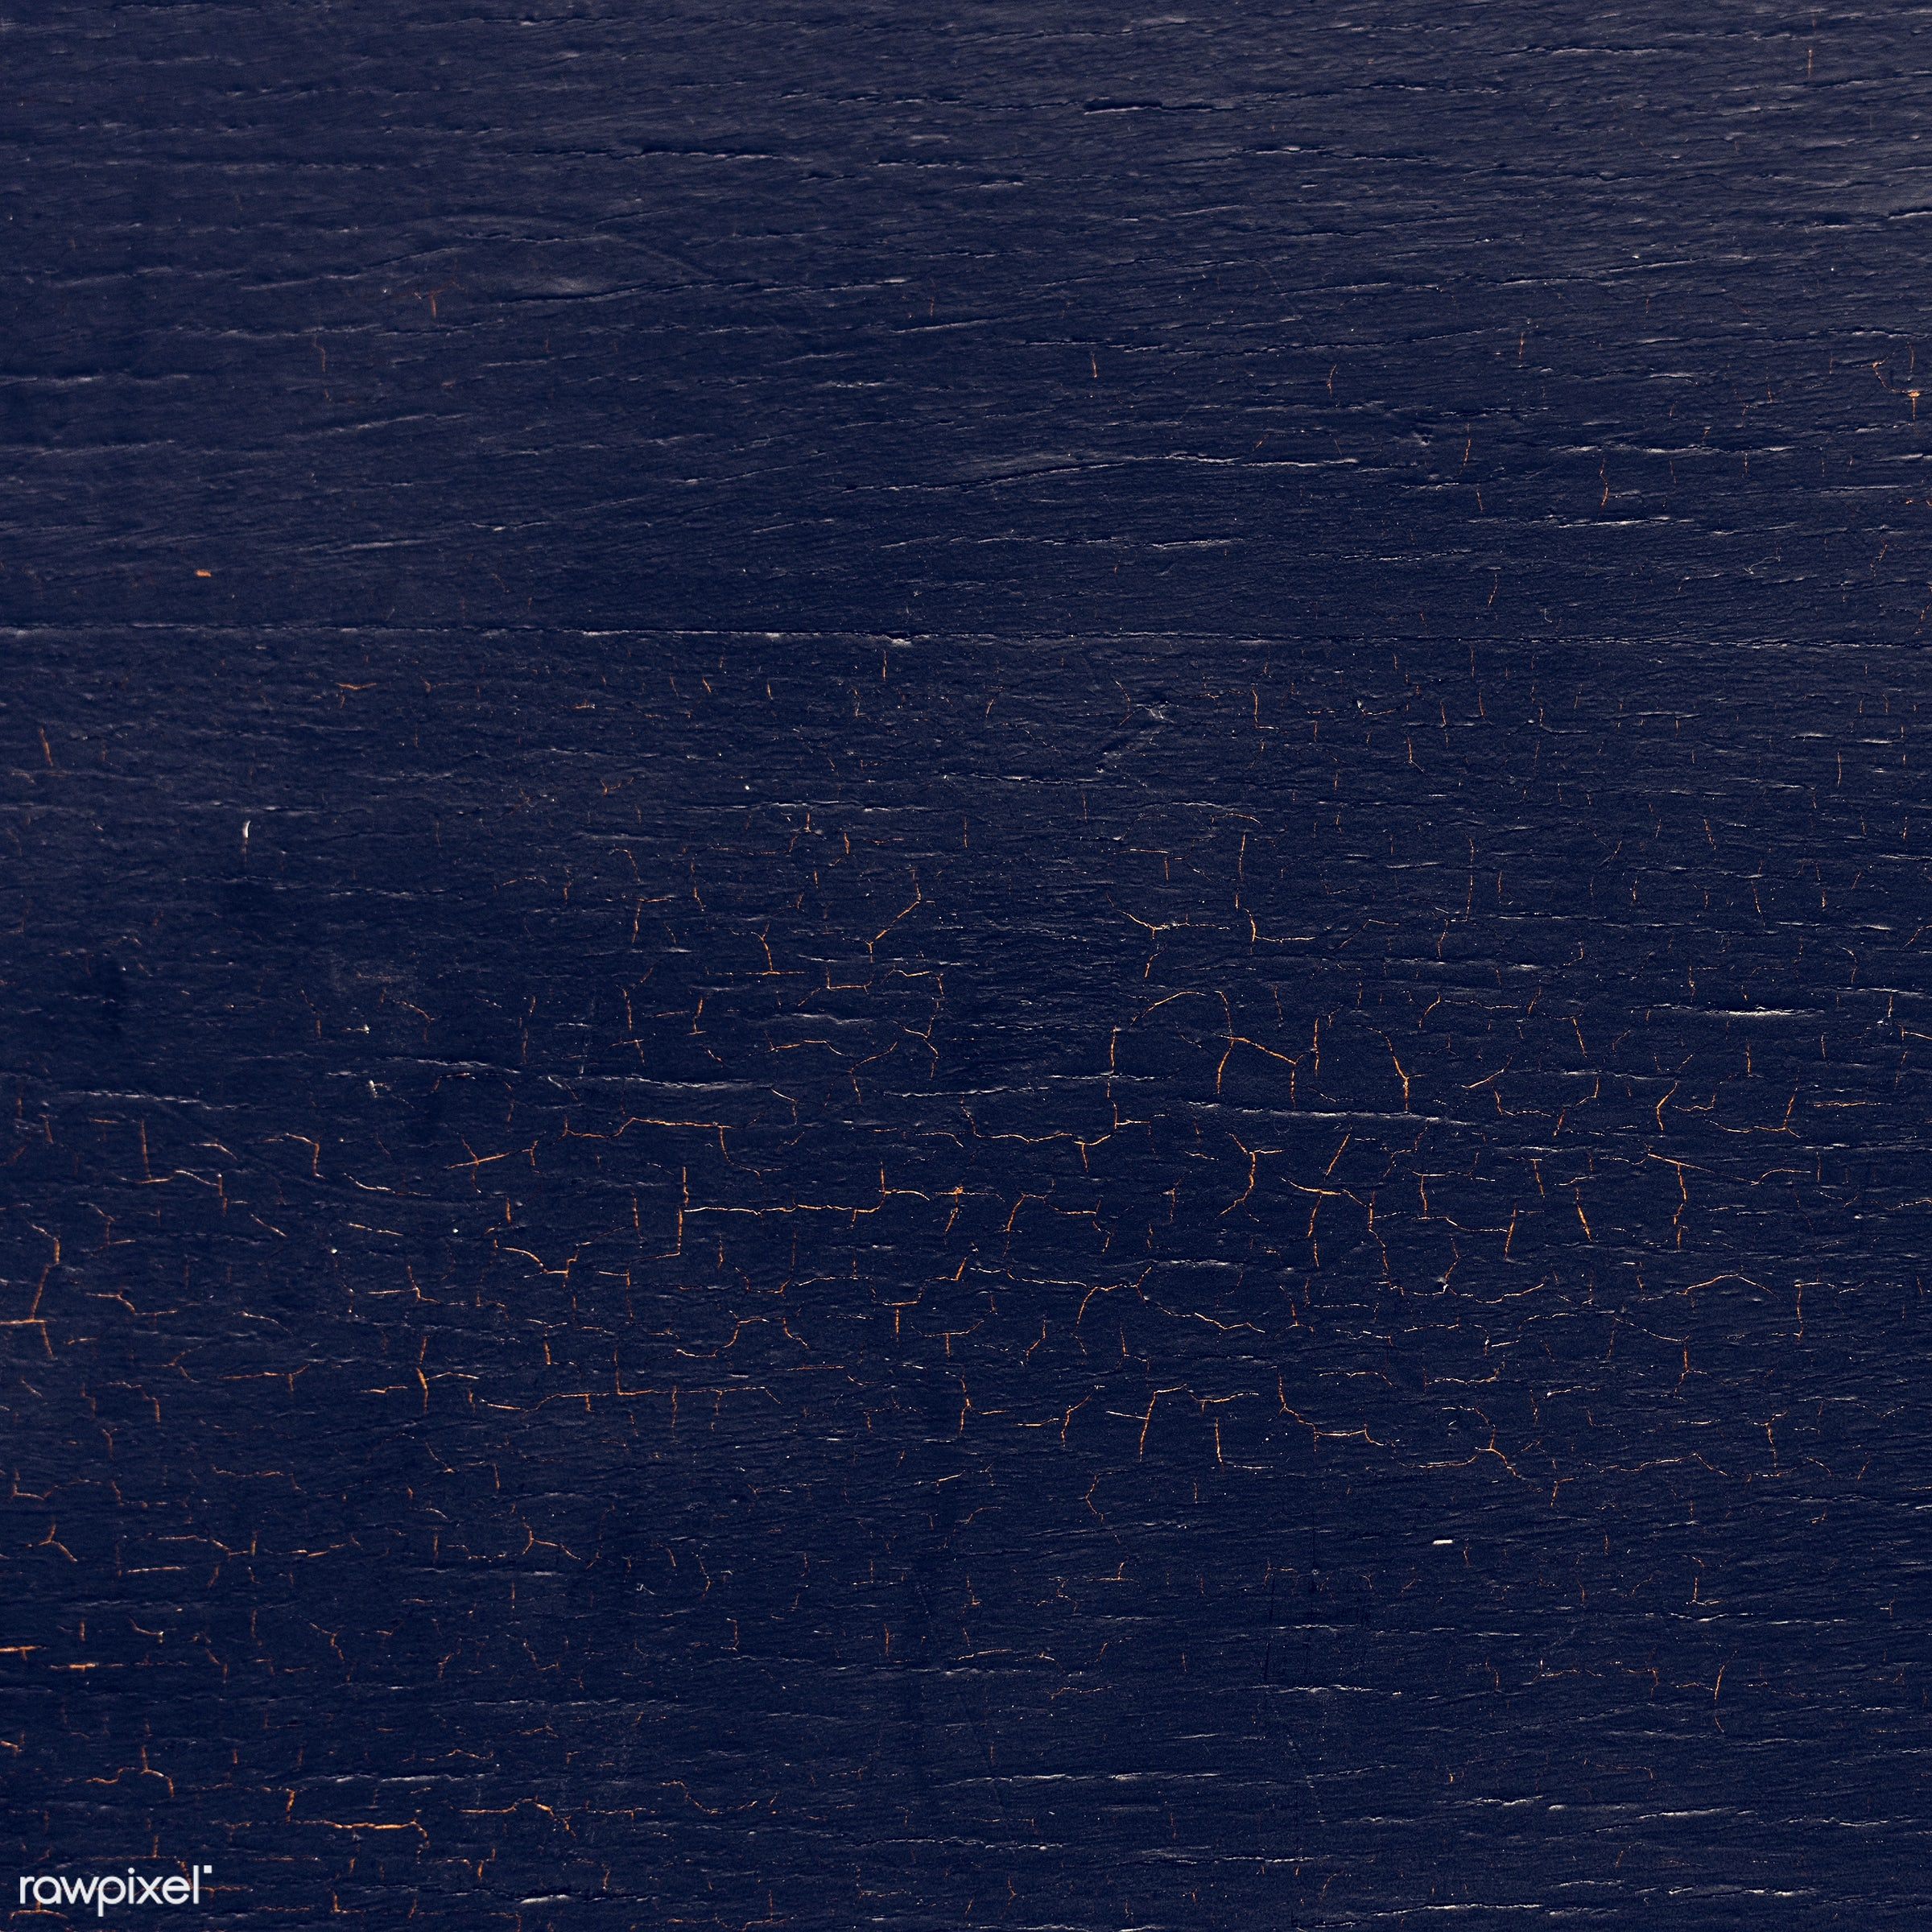 panel, old, copy space, surface, decorative, wood, carpentry, grungy, retro, plank, rustic, grunge, abstract, timber,...